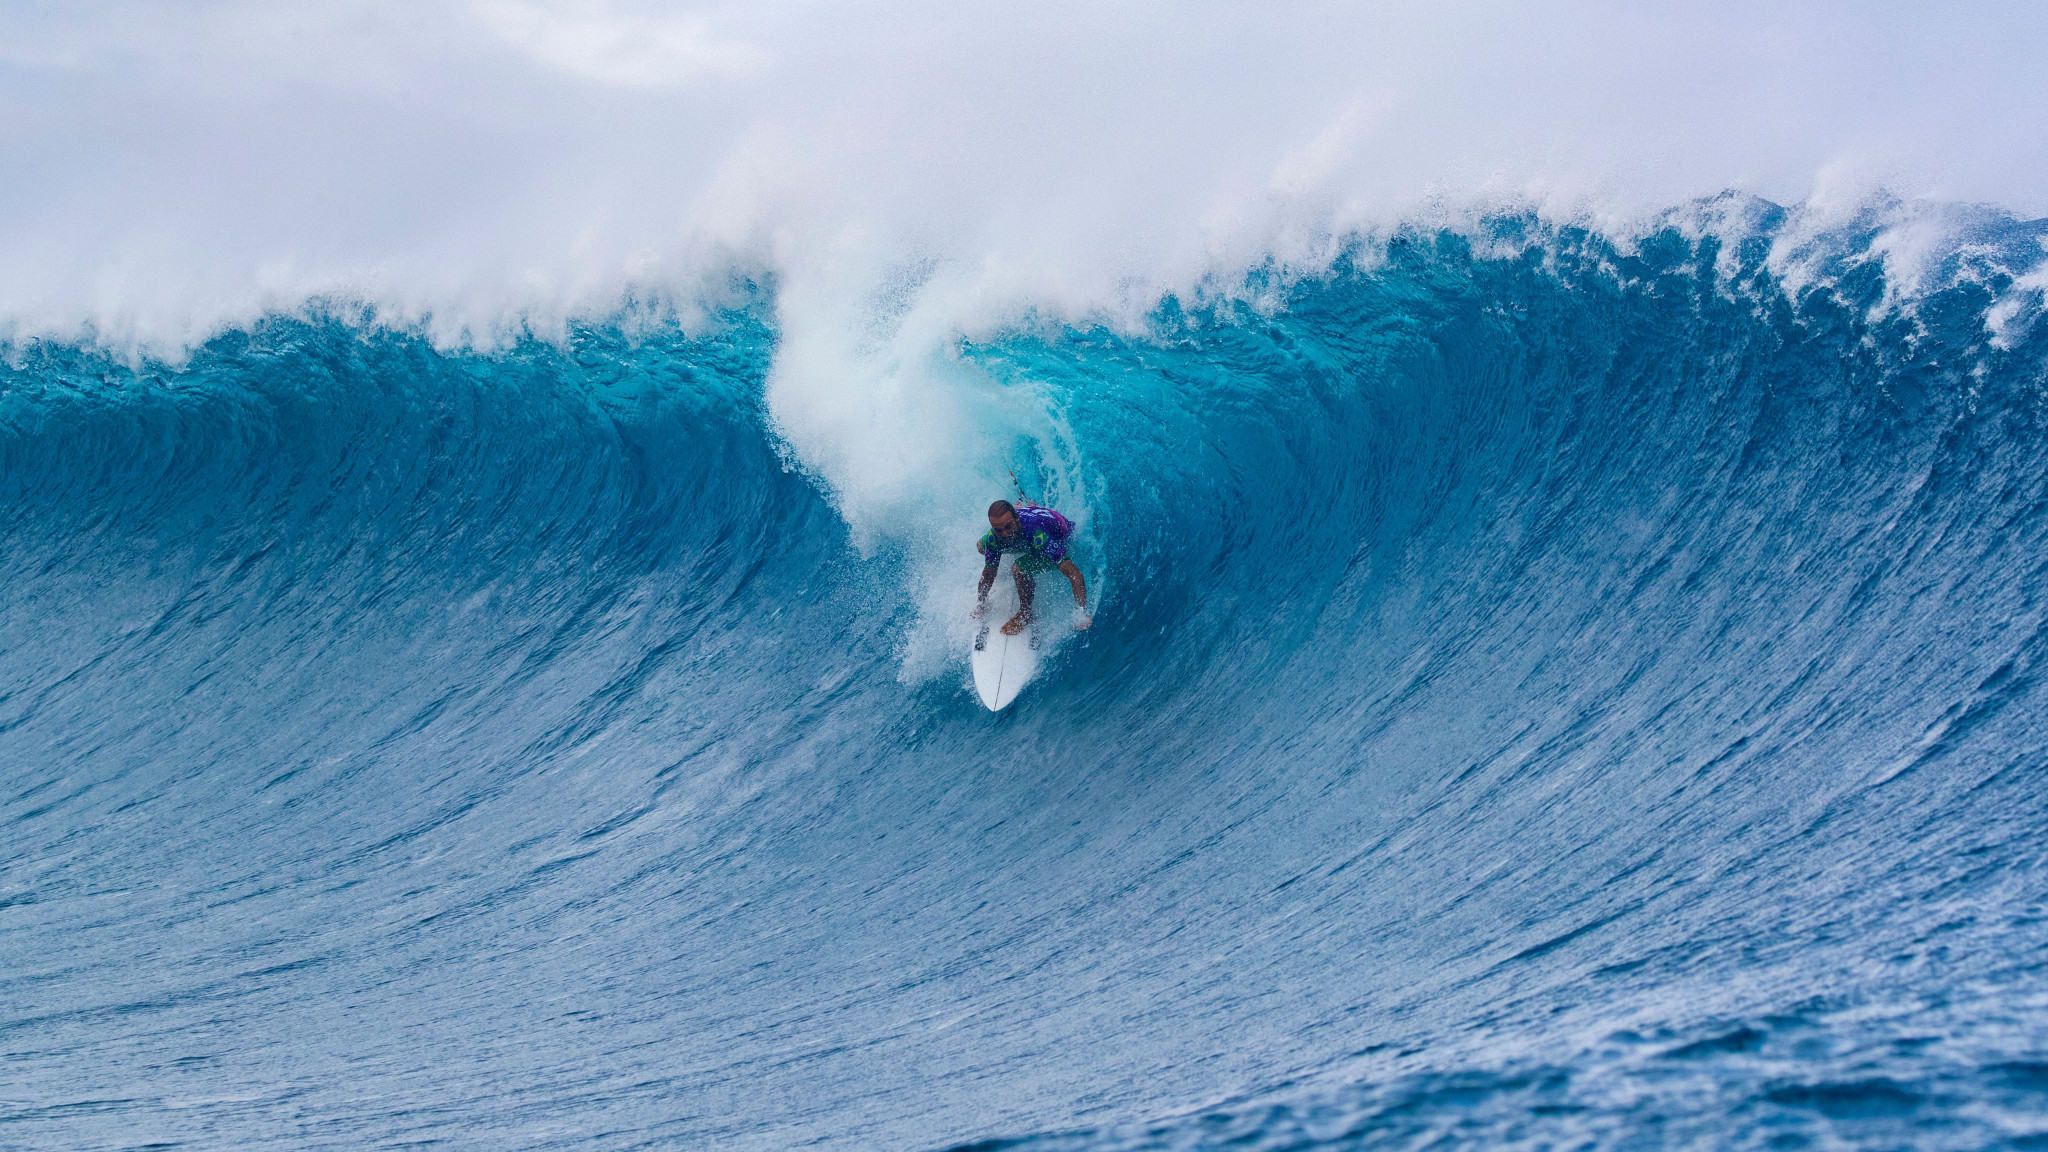 Tahiti has been approved as the Paris 2024 surfing venue ©Getty Images